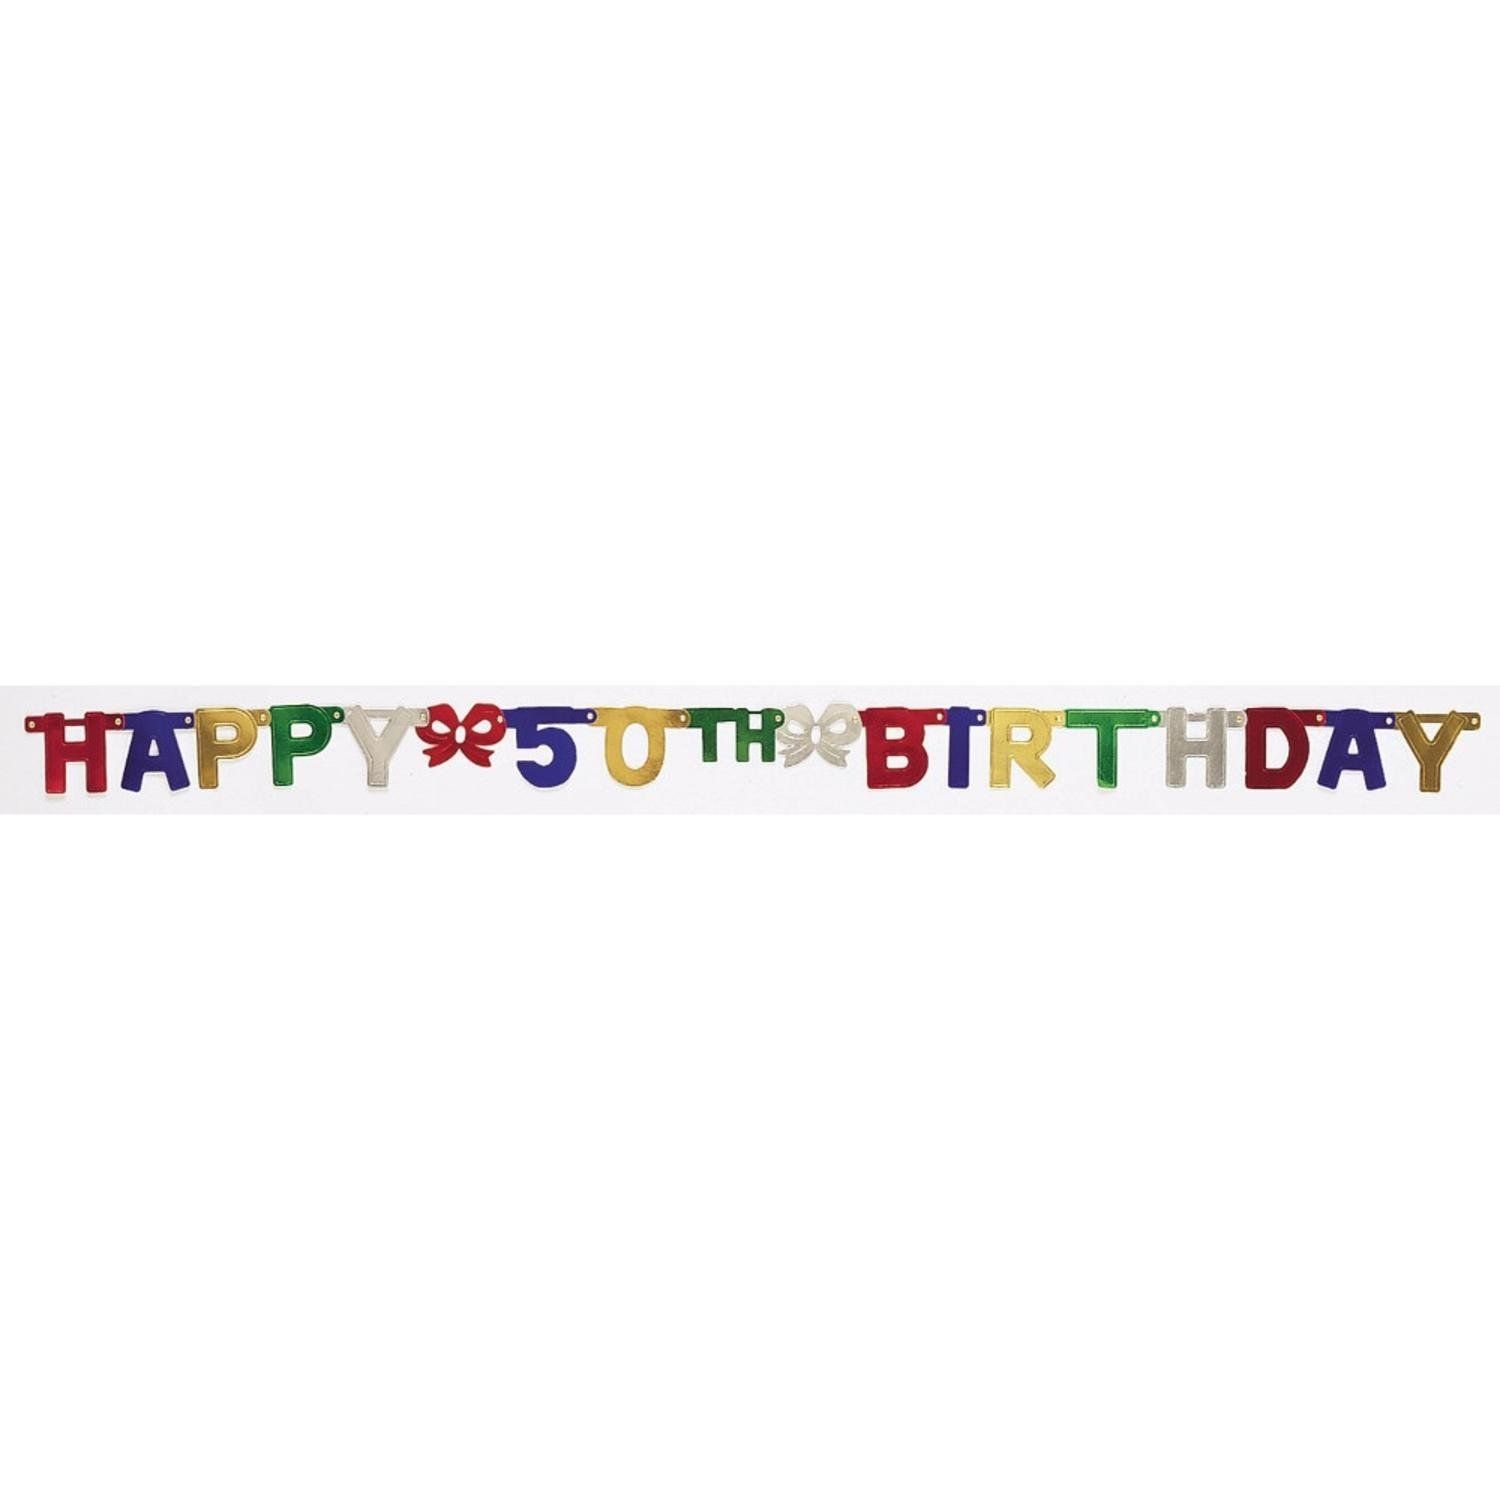 Cheap 50th birthday banners find 50th birthday banners deals on club pack of 12 multi colored happy 50th birthday small jointed party banners publicscrutiny Image collections